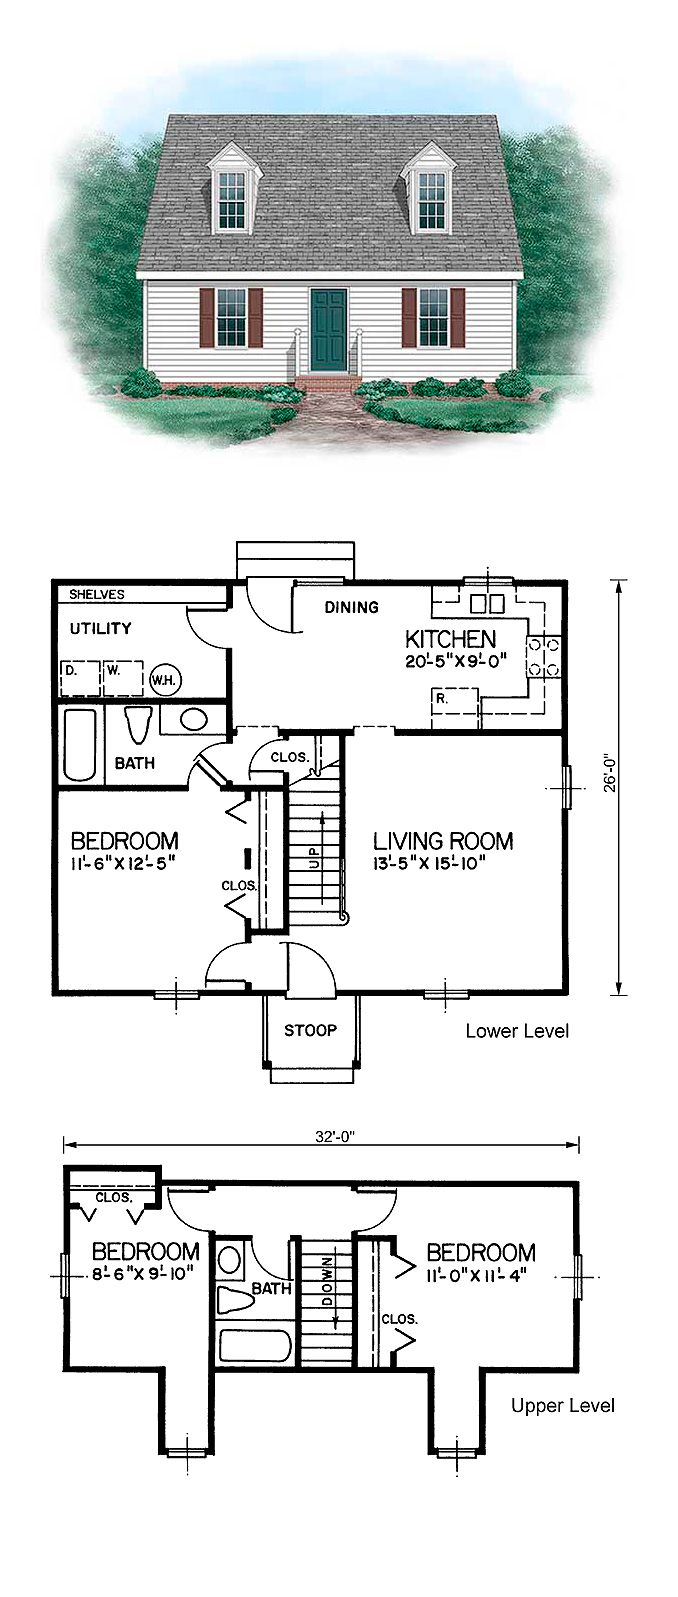 CapeCod Style COOL House Plan ID: chp-24151 | Total Living Area: 1257 sq. ft., 3 bedrooms and 2 bathrooms. #capecodhome